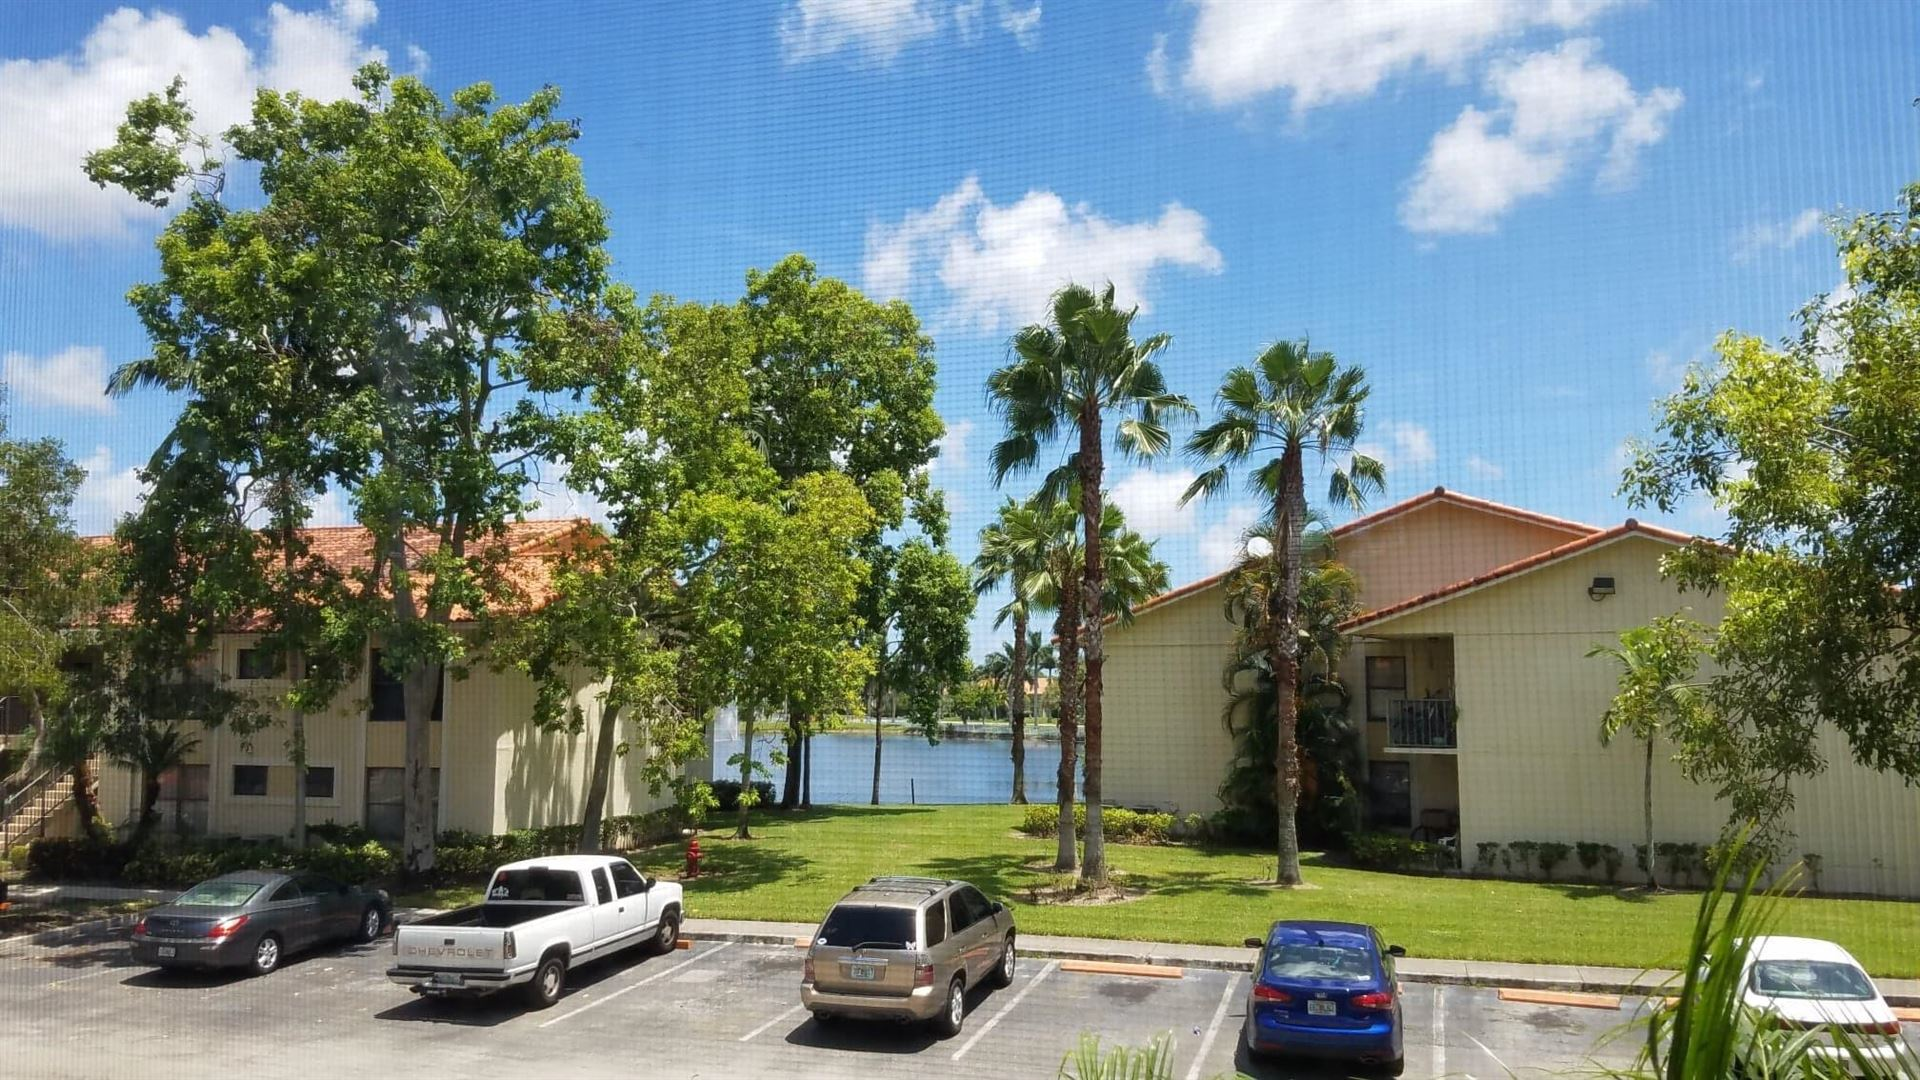 Photo of 1541 Windorah Way E #E, West Palm Beach, FL 33411 (MLS # RX-10685531)